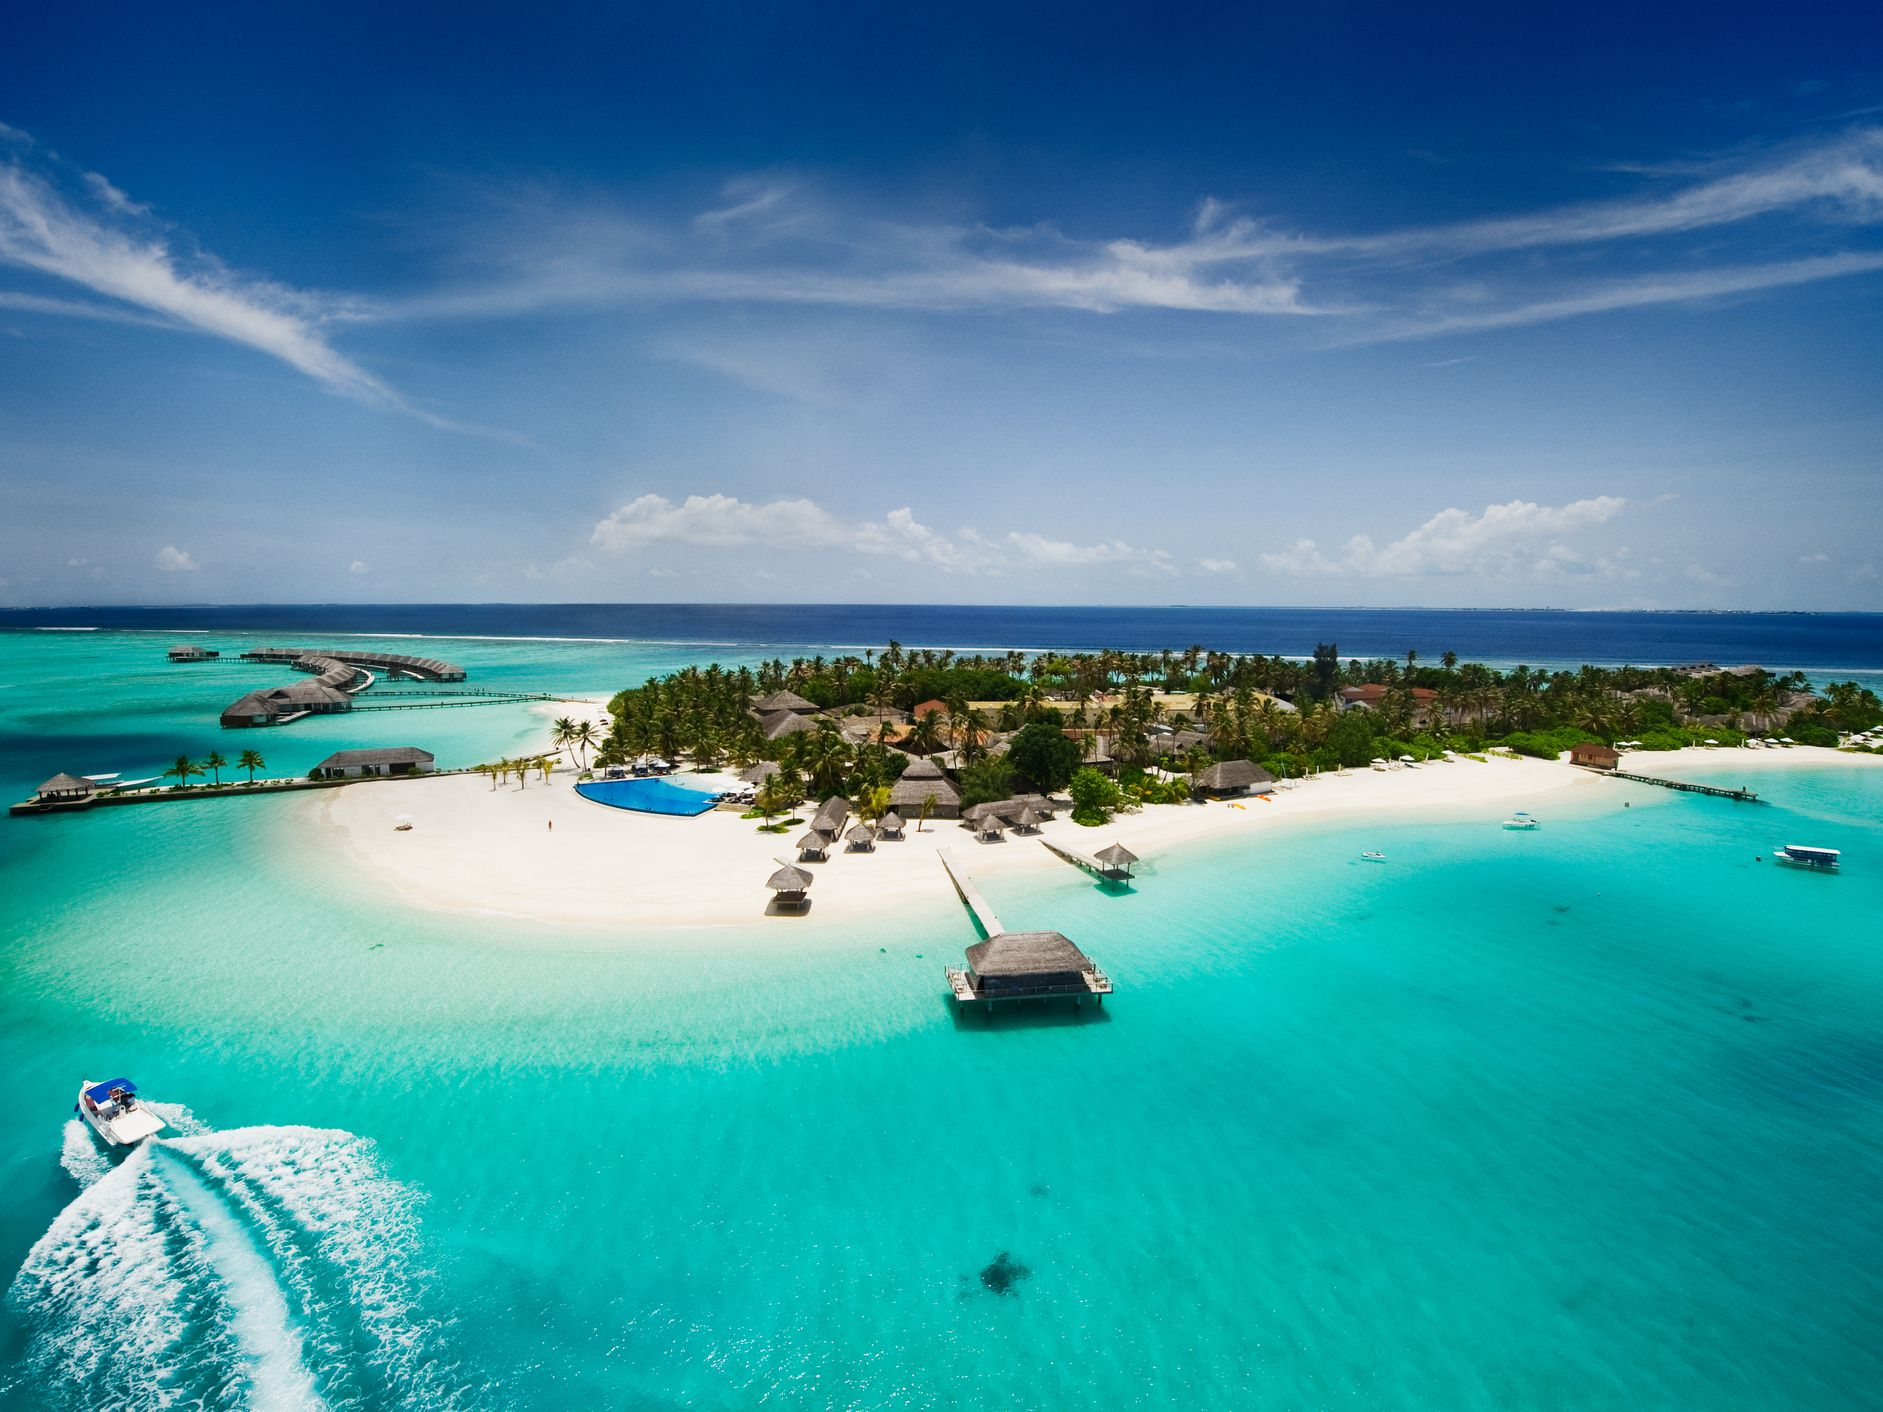 The Top 11 Things To Do In The Maldives